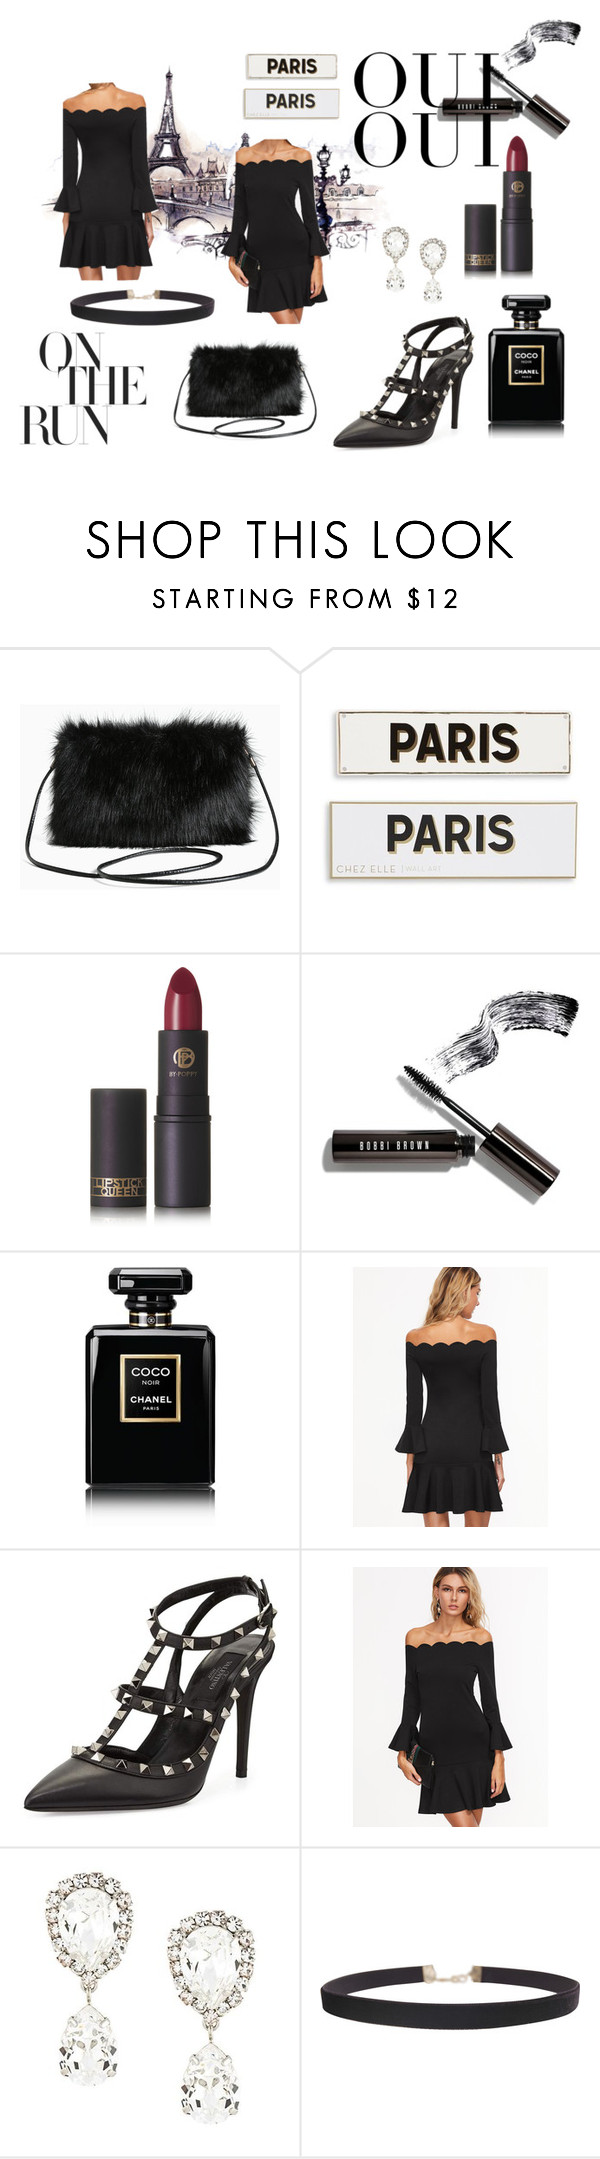 """Dressy In Black"" by mariliiskaar ❤ liked on Polyvore featuring Torrid, Rosanna, Lipstick Queen, Bobbi Brown Cosmetics, Chanel, Valentino, Oui, Dolce&Gabbana and Humble Chic"